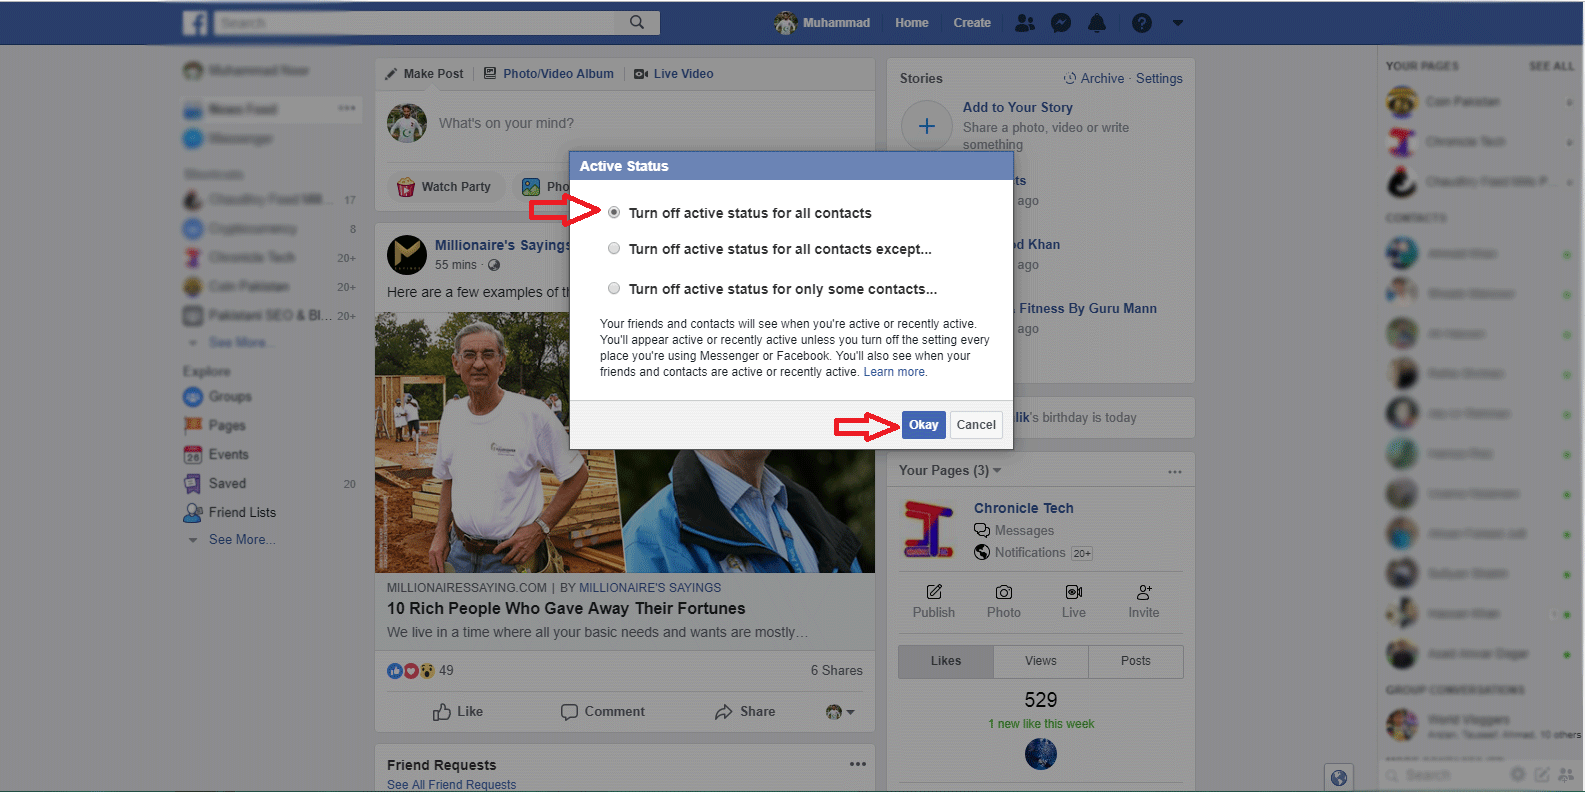 how-to-turn-off-active-status-on-facebook-messenger-in-2019